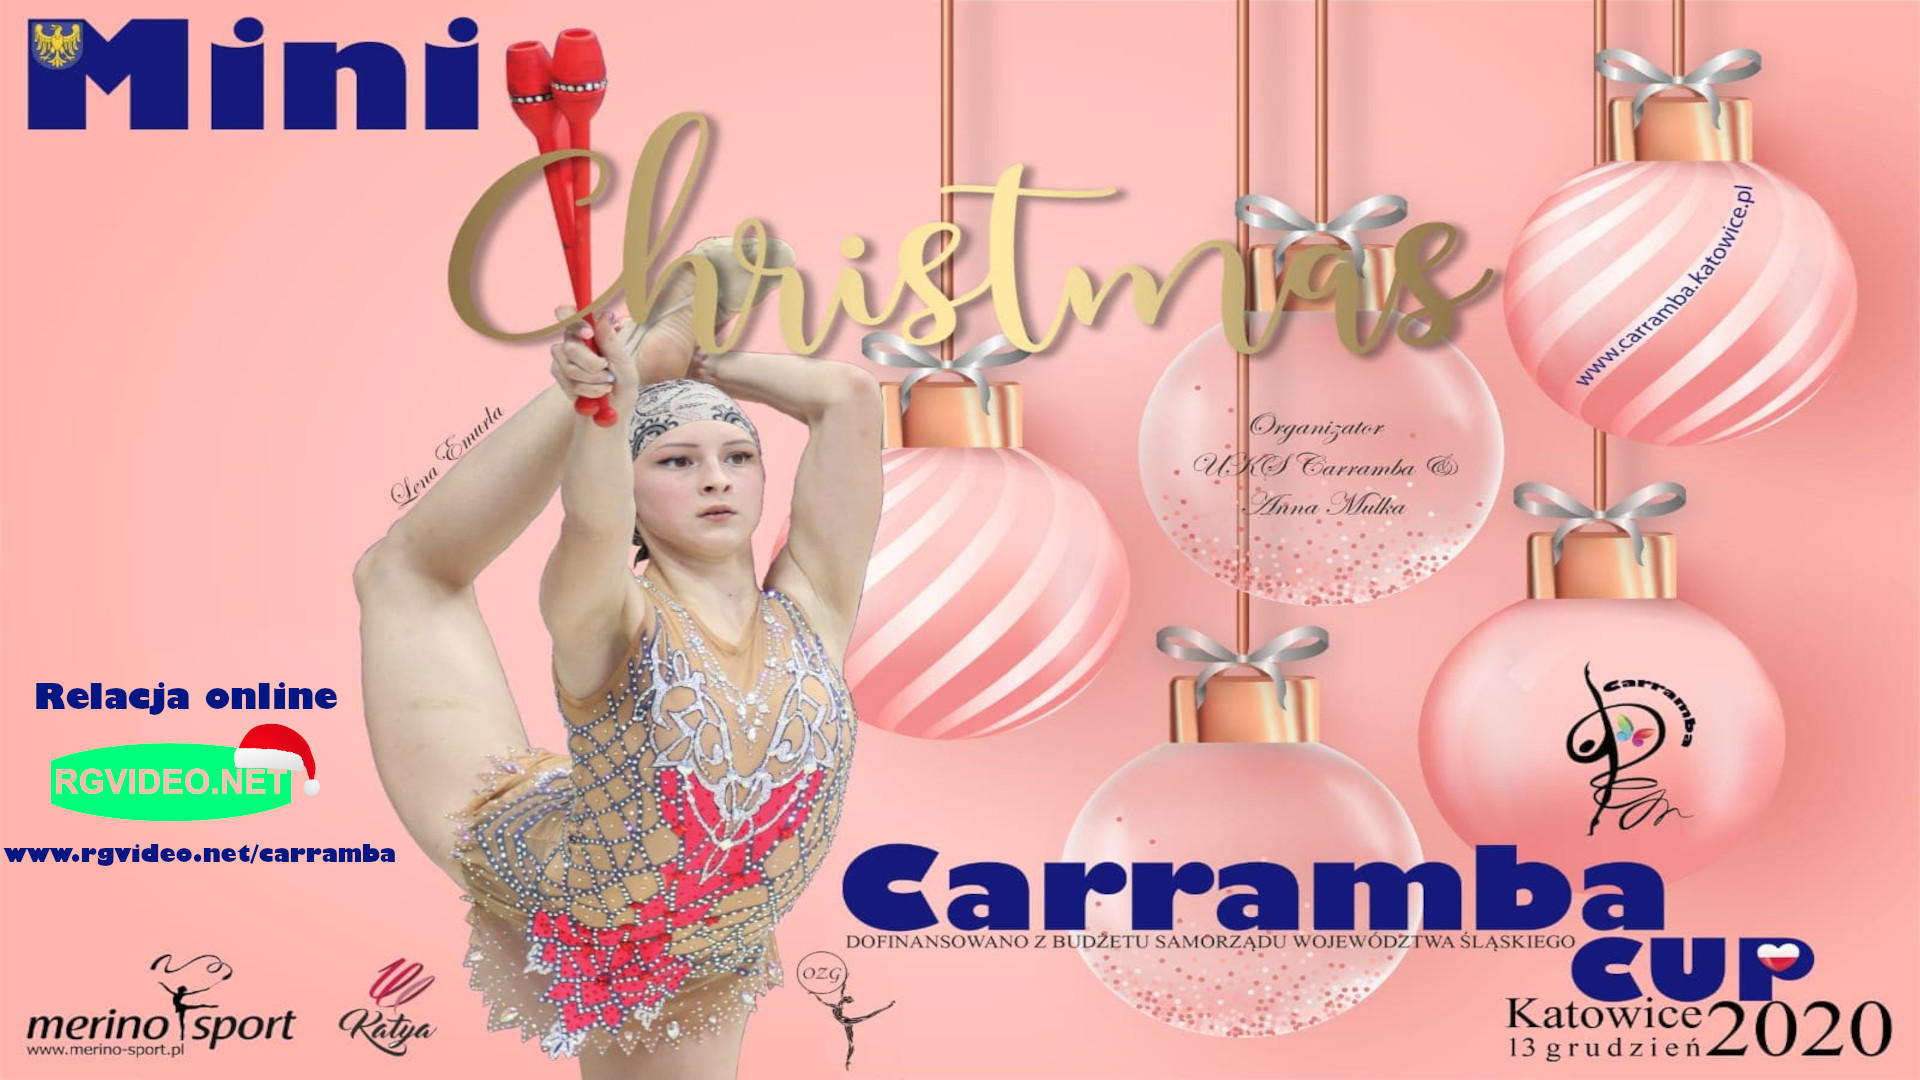 MINI CARRAMBA CHRISTMAS CUP 2020